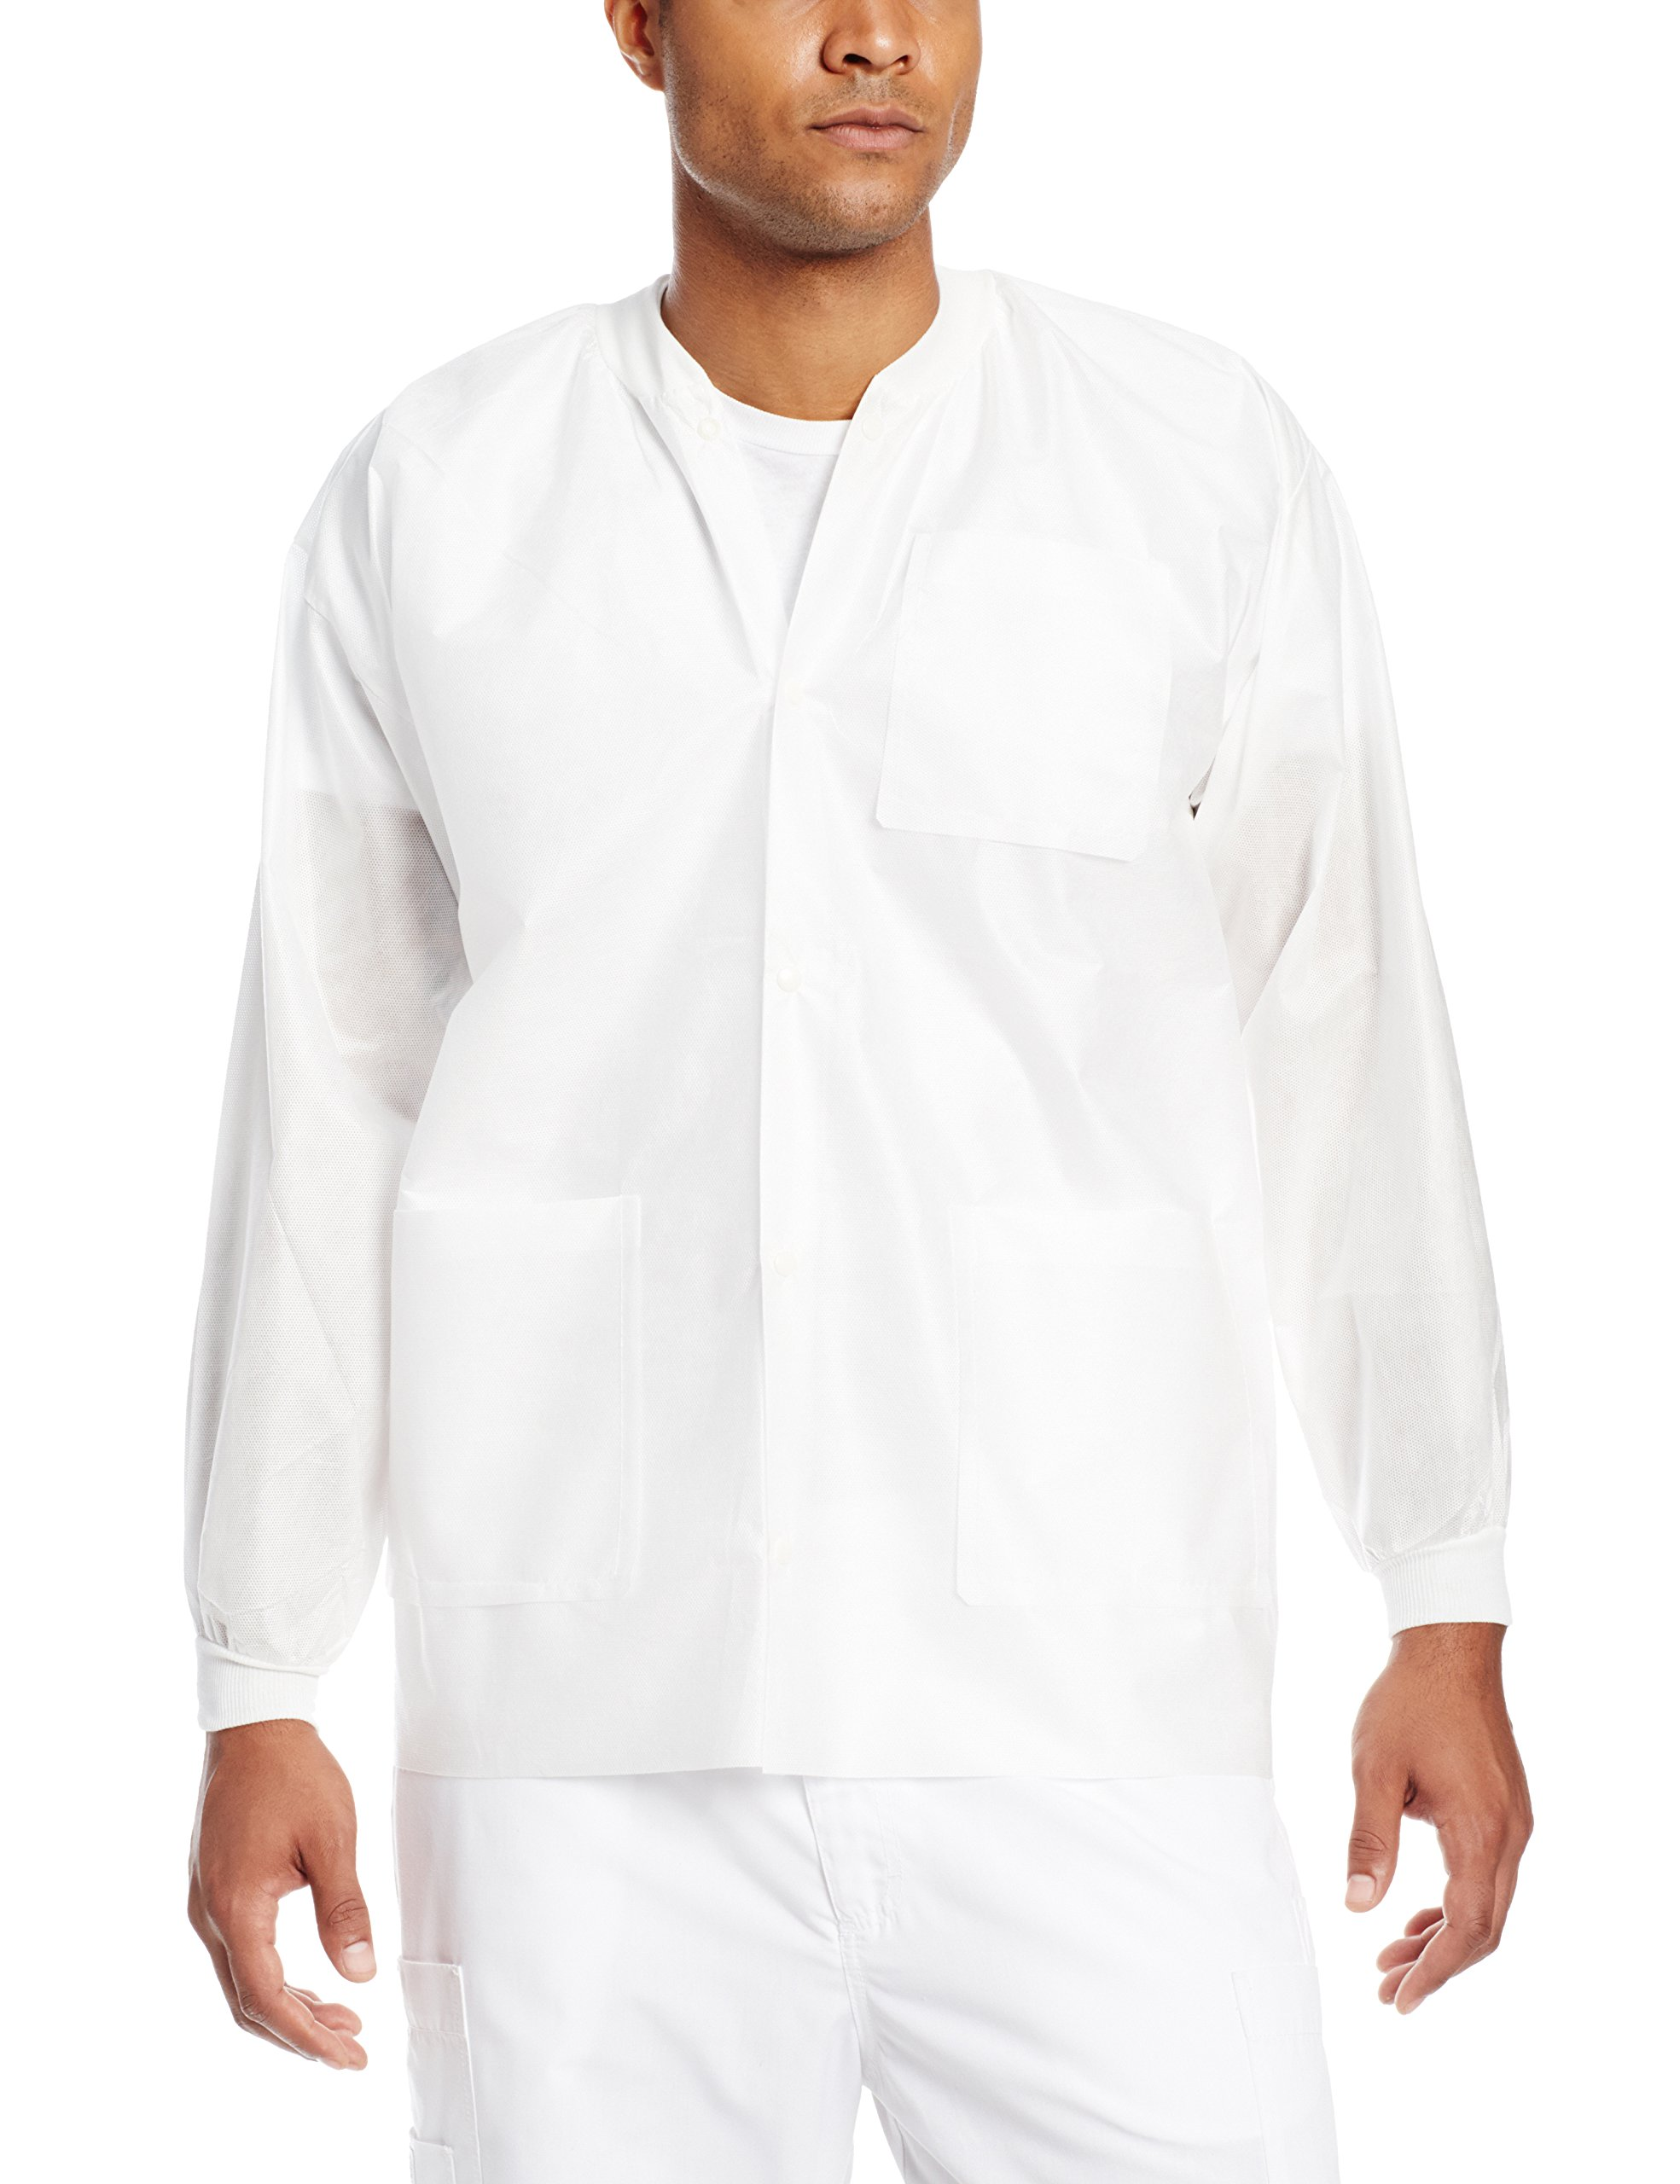 ValuMax 3630WHXL Extra-Safe, Wrinkle-Free, Noble Looking Disposable SMS Hip Length Jacket, White, XL, Pack of 10